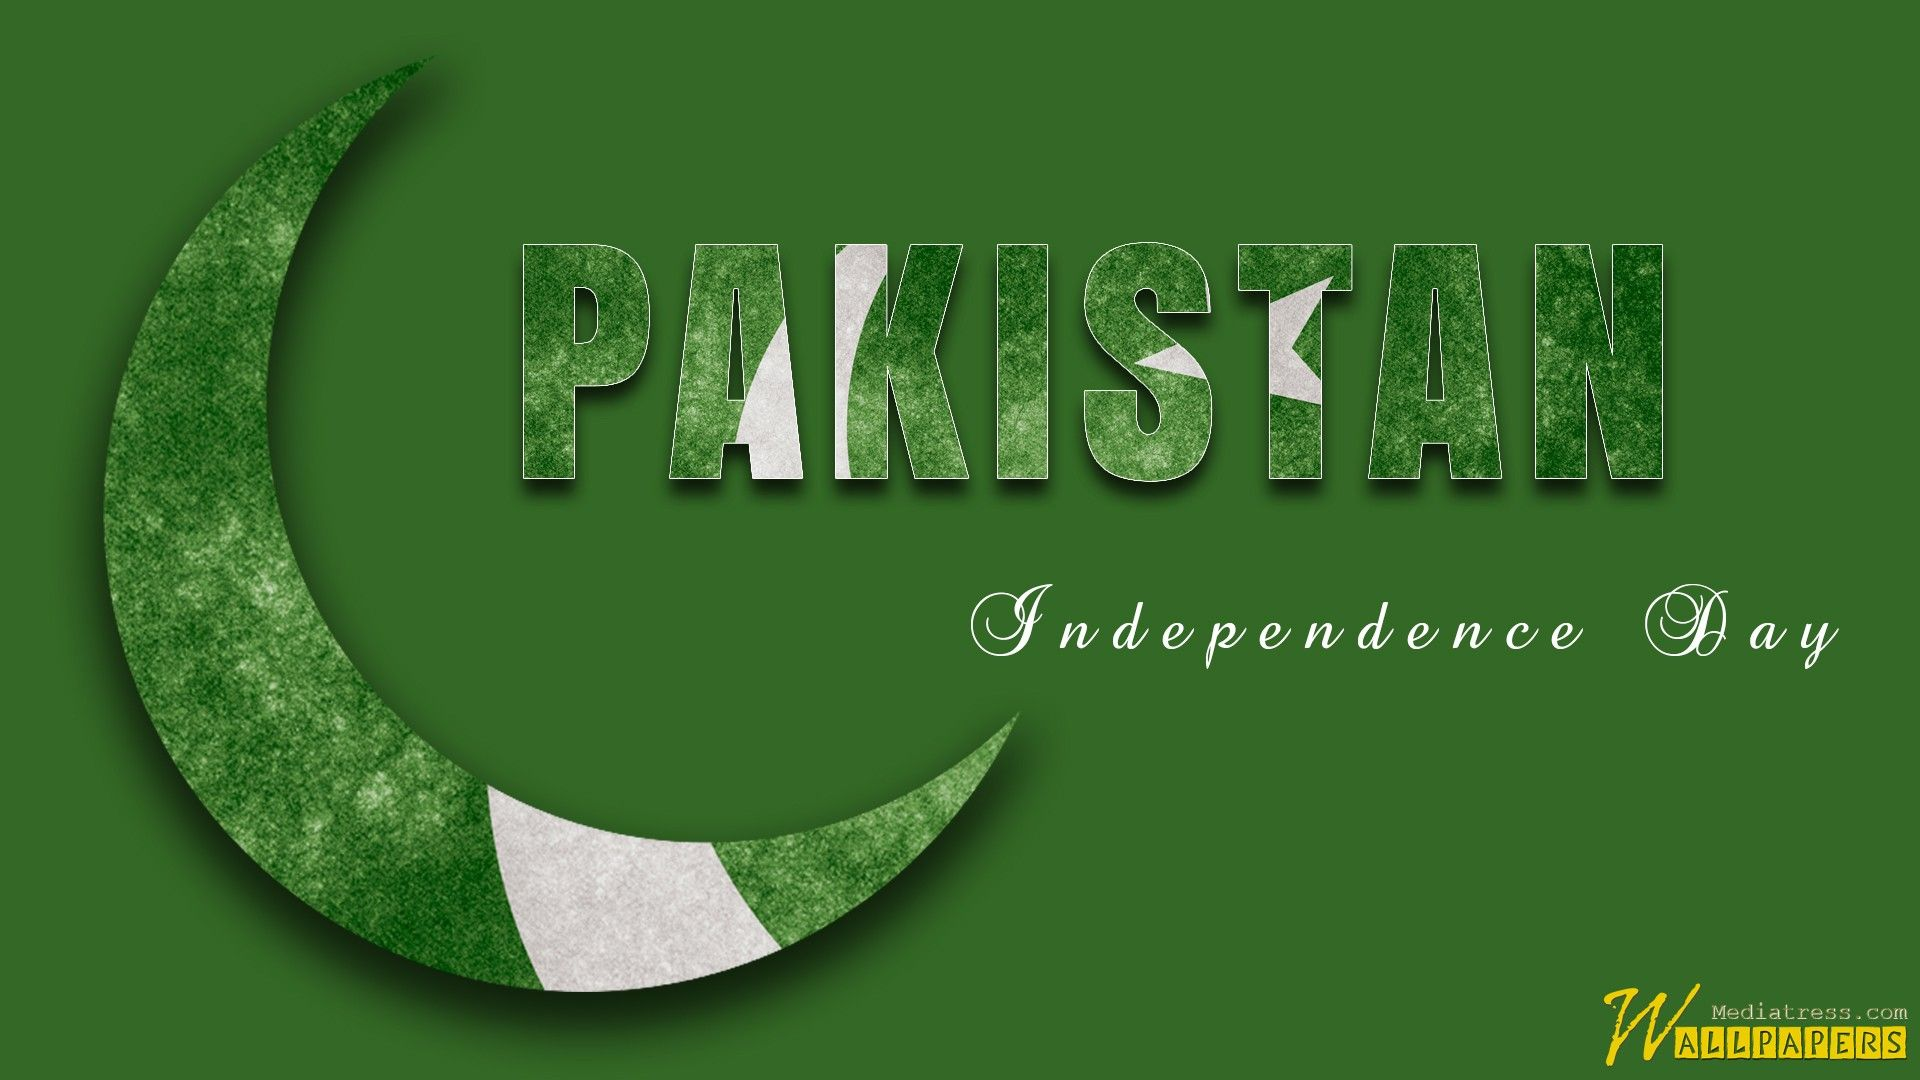 1920x1080 Wallpaper Of Happy Independence Day With Pakistani Flag Mt Baby ...